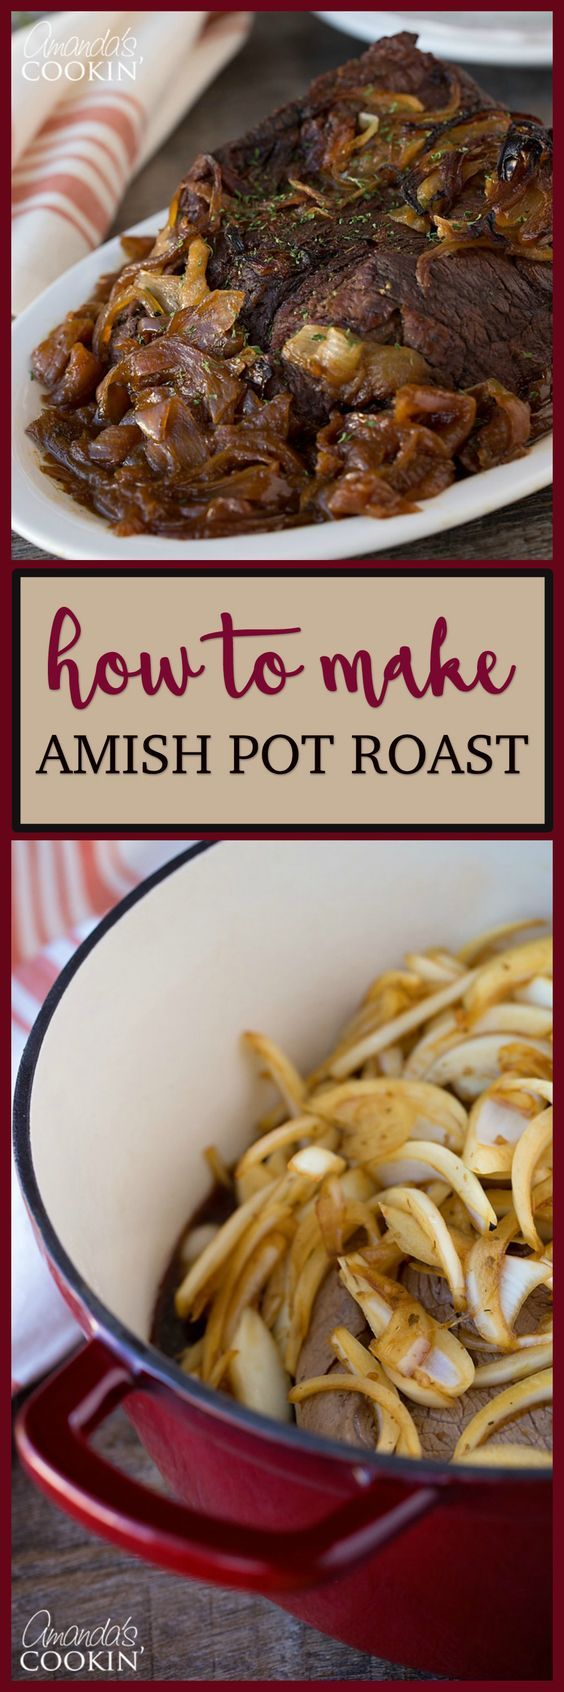 This Amish pot roast is packed full of flavor and loaded with mouth-watering juices! This is truly a downright delicious dinner recipe!